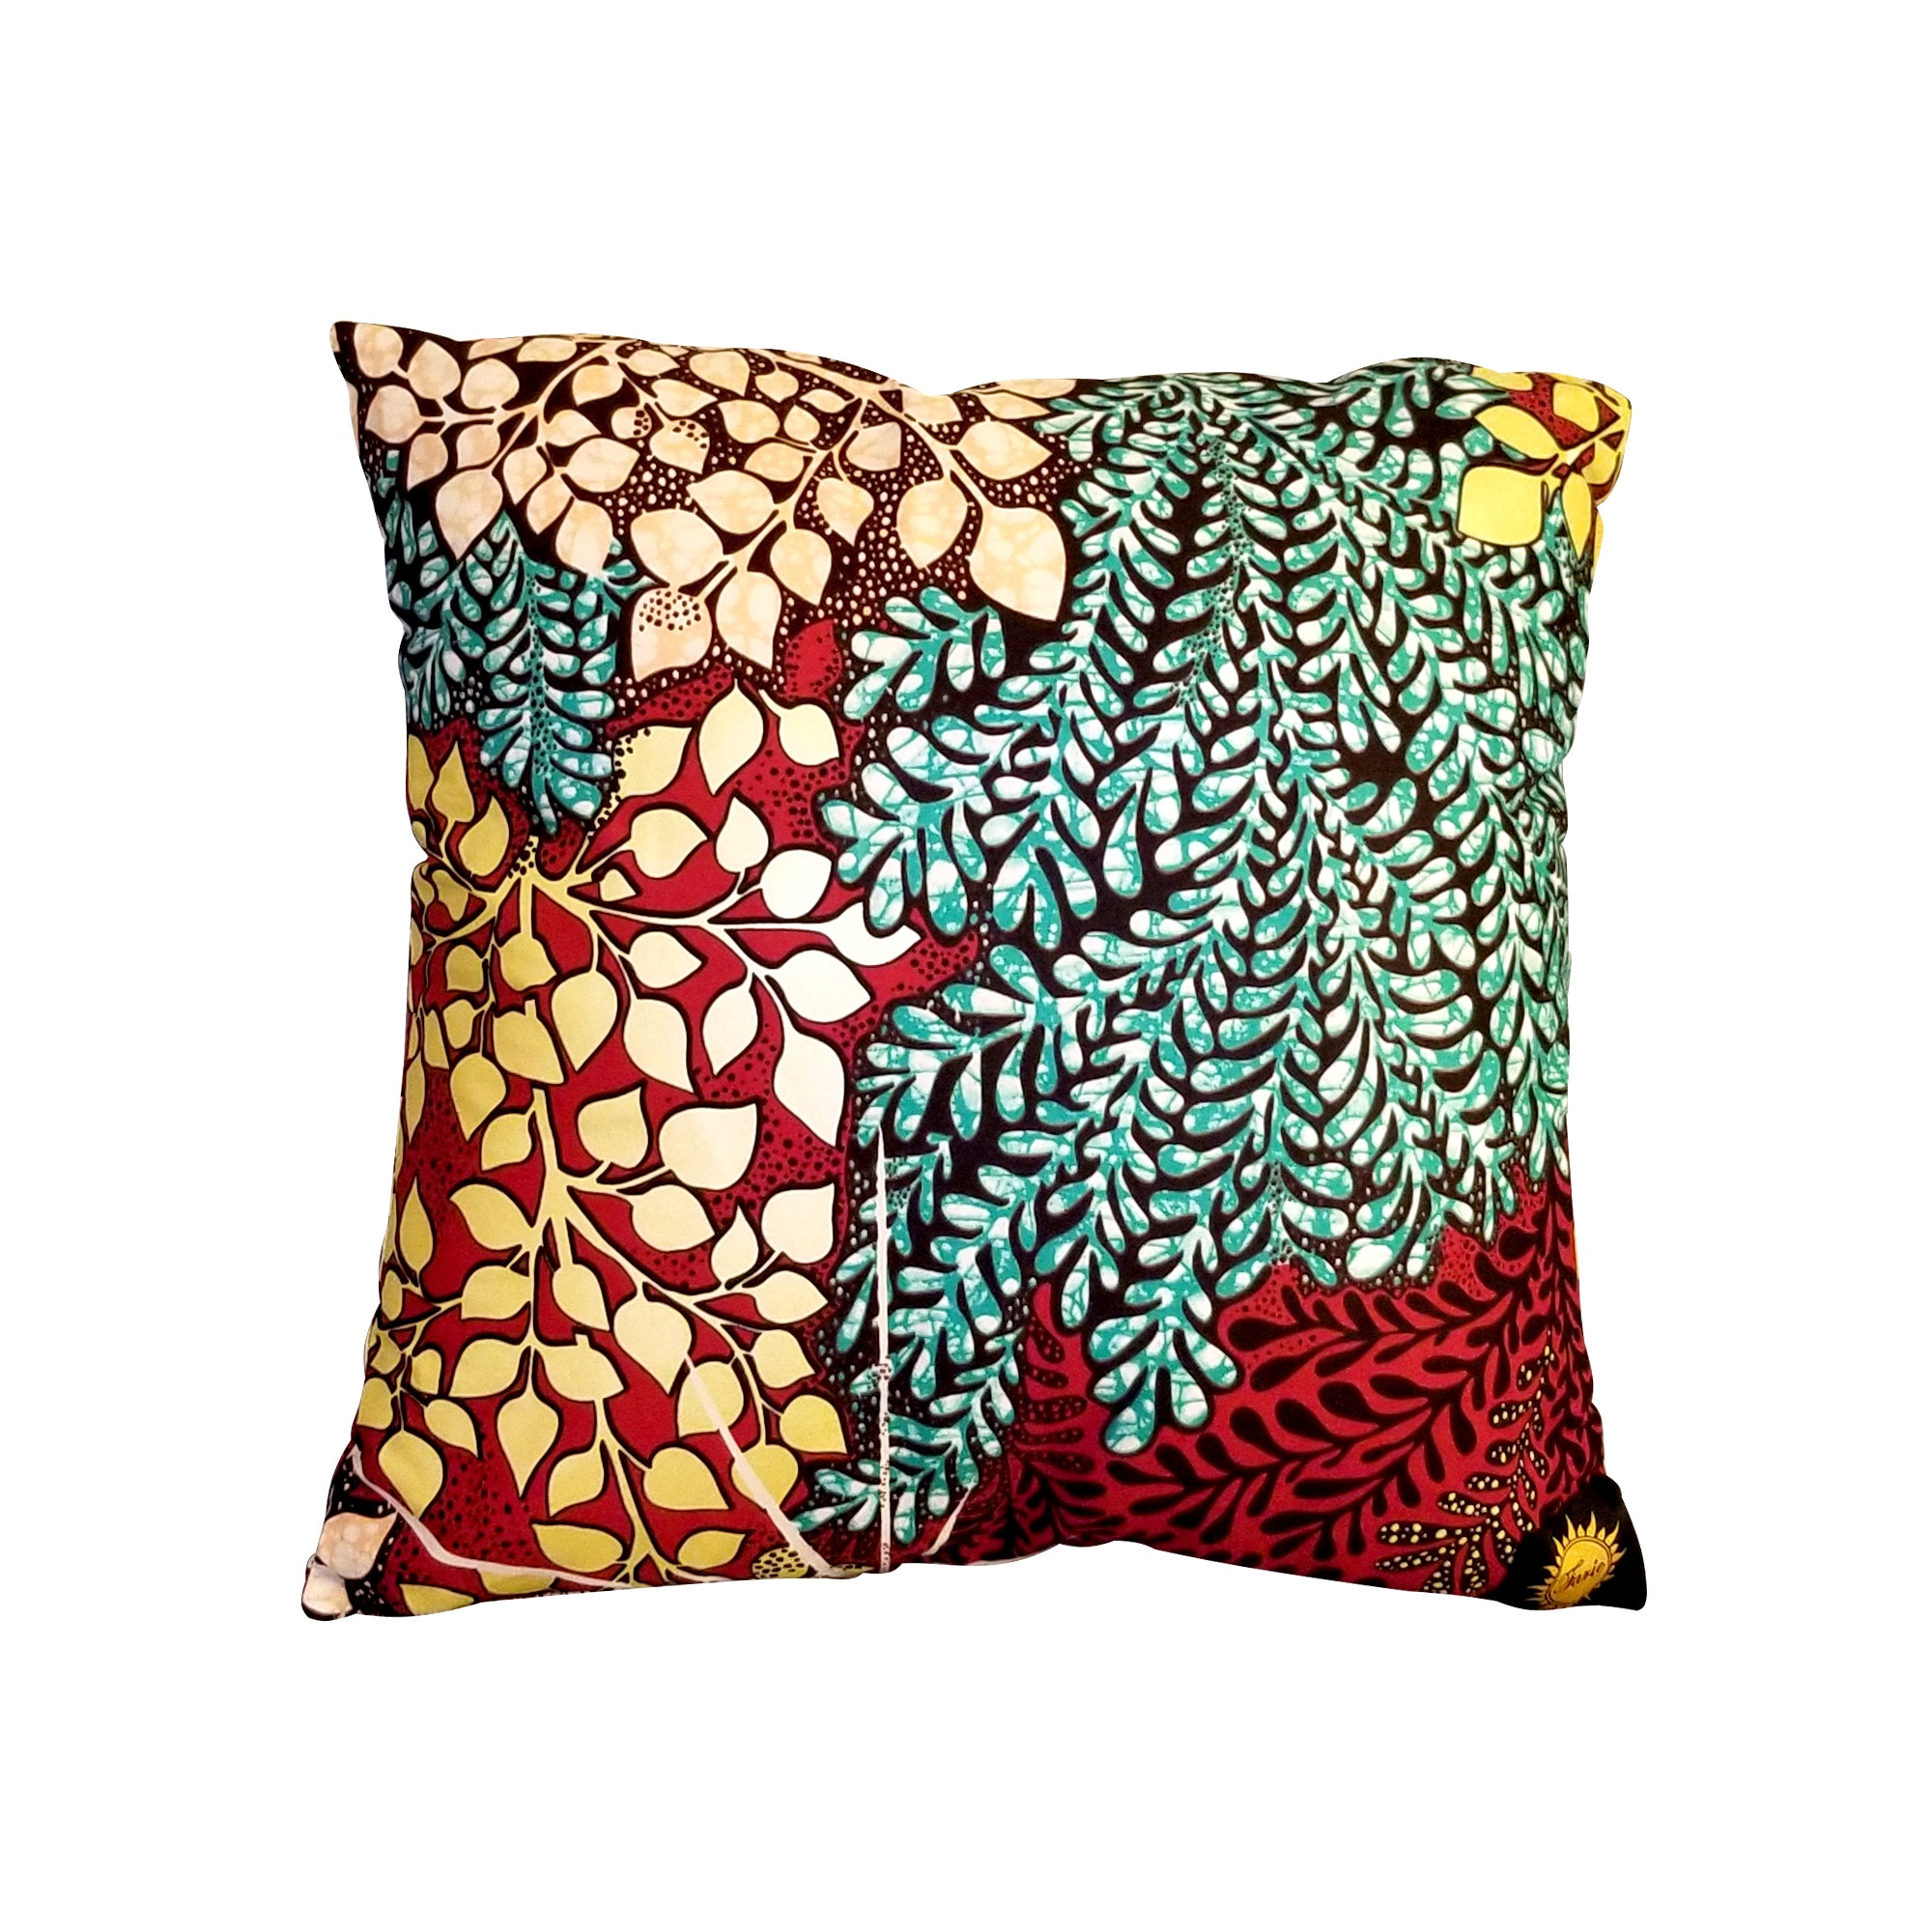 Ankara Square Cotton Pillow Cover Insert Multi Farie S Collection